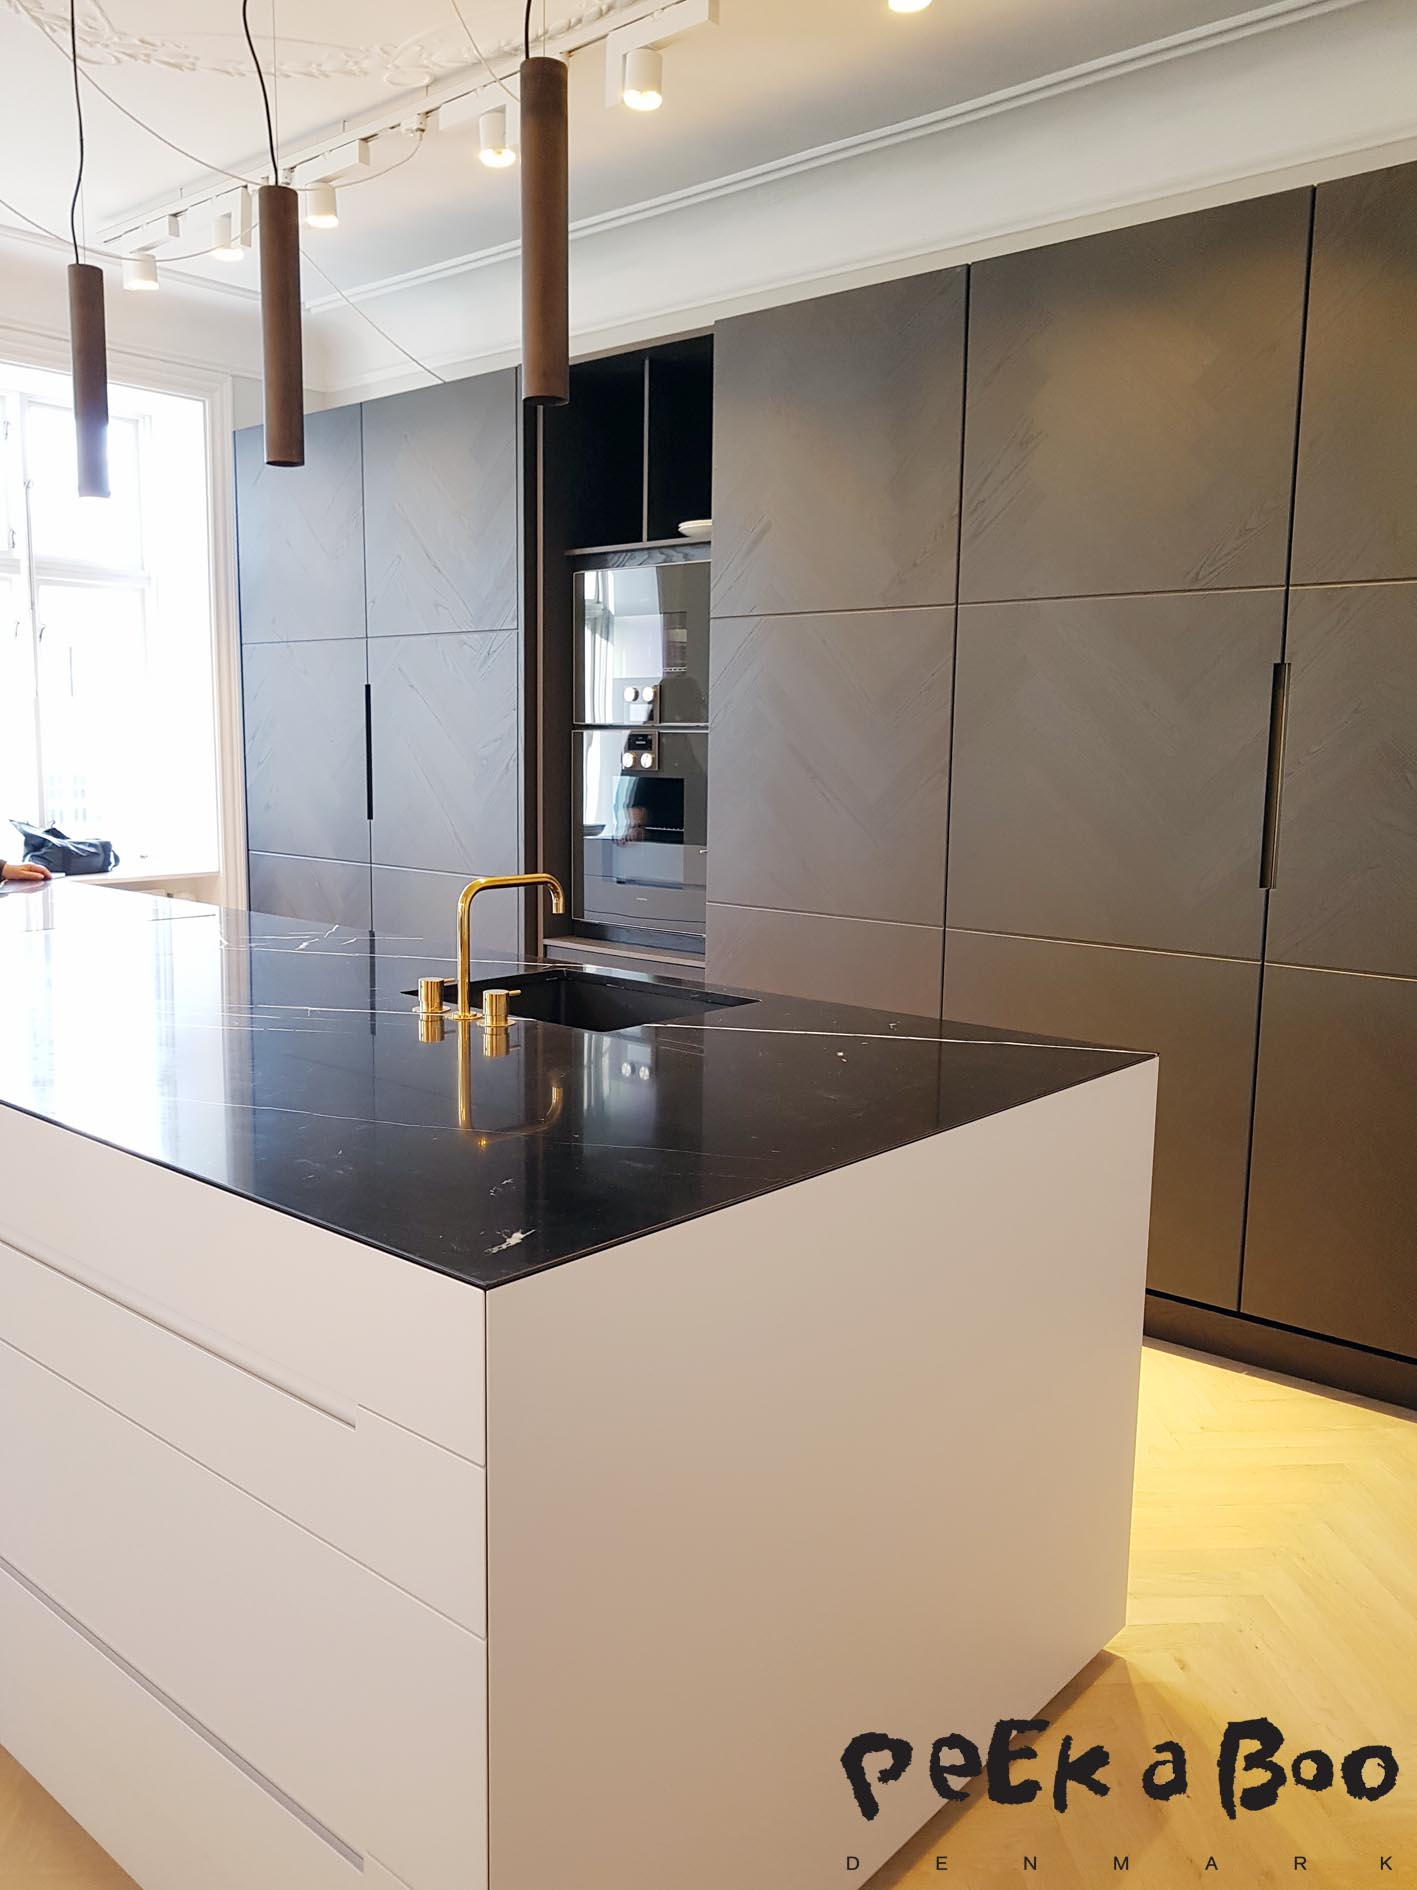 The closed kitchen with the dark wood and black Italian marble.